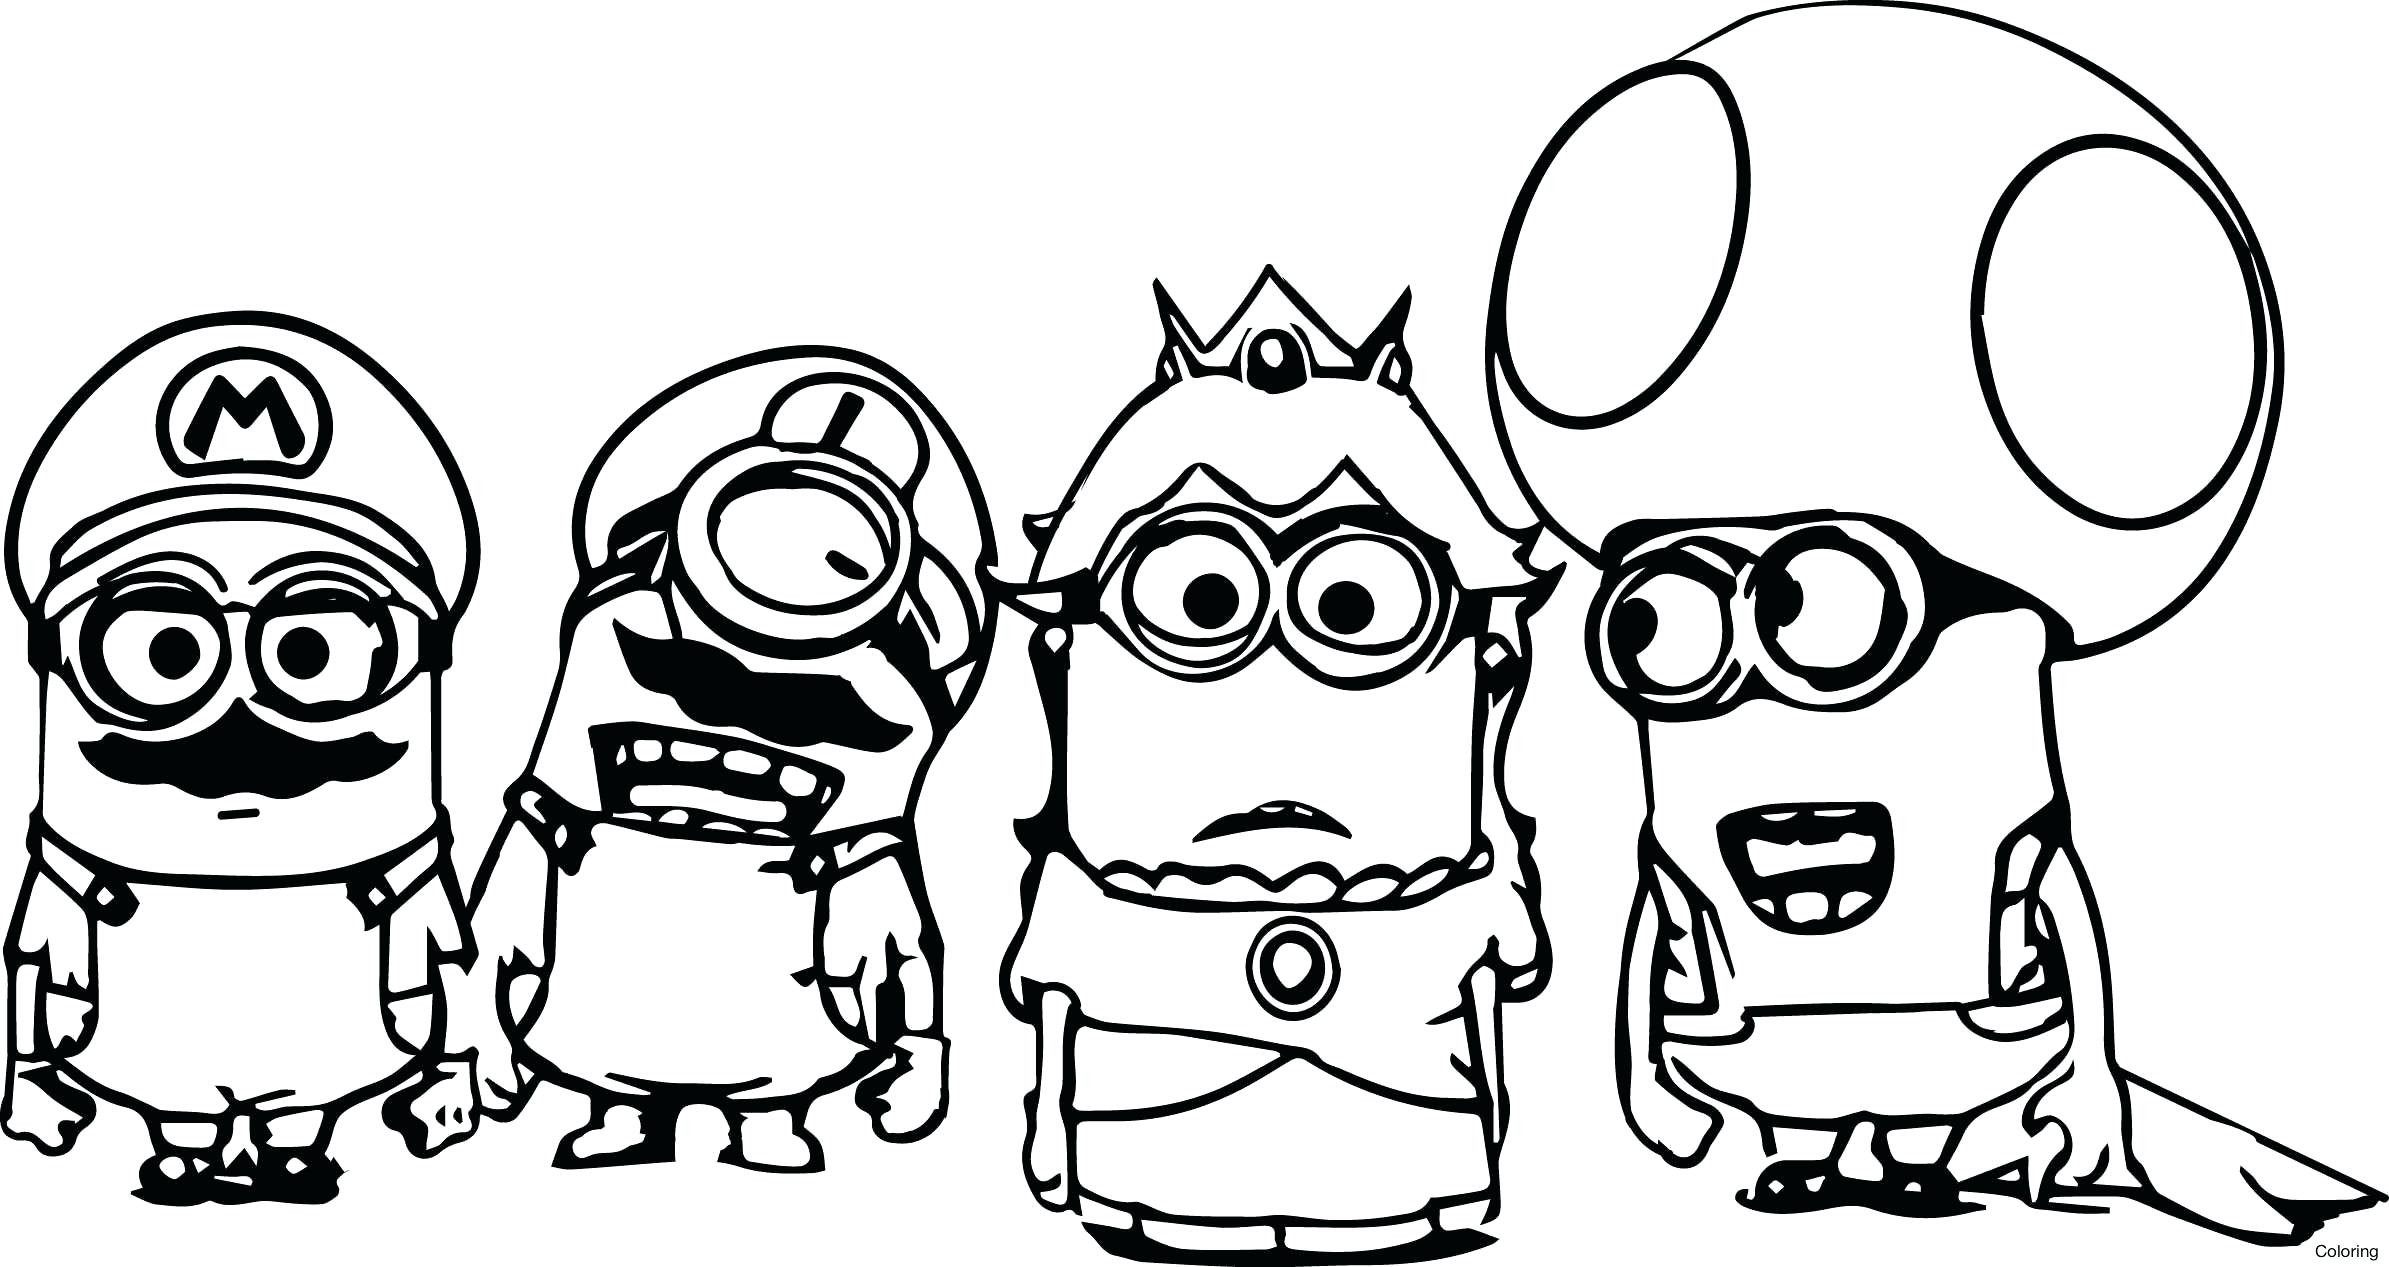 2389x1267 Free Minion Coloring Pages Best For Kids Ribsvigyapan Com